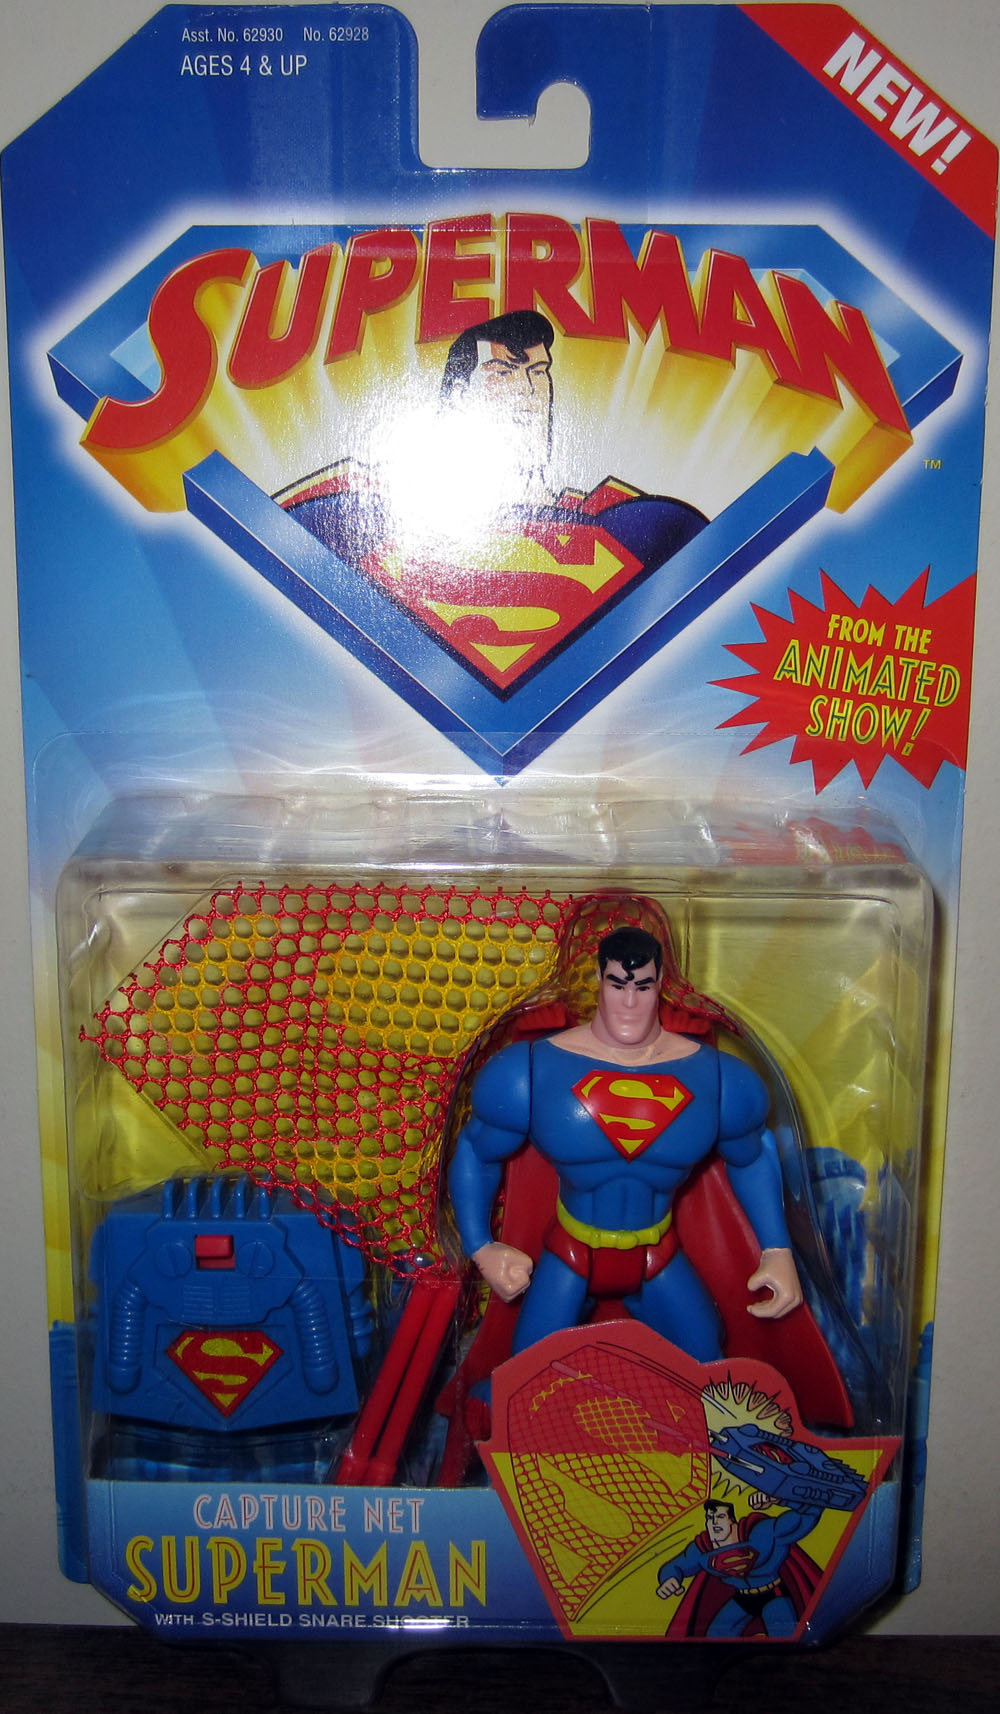 Capture Net Superman